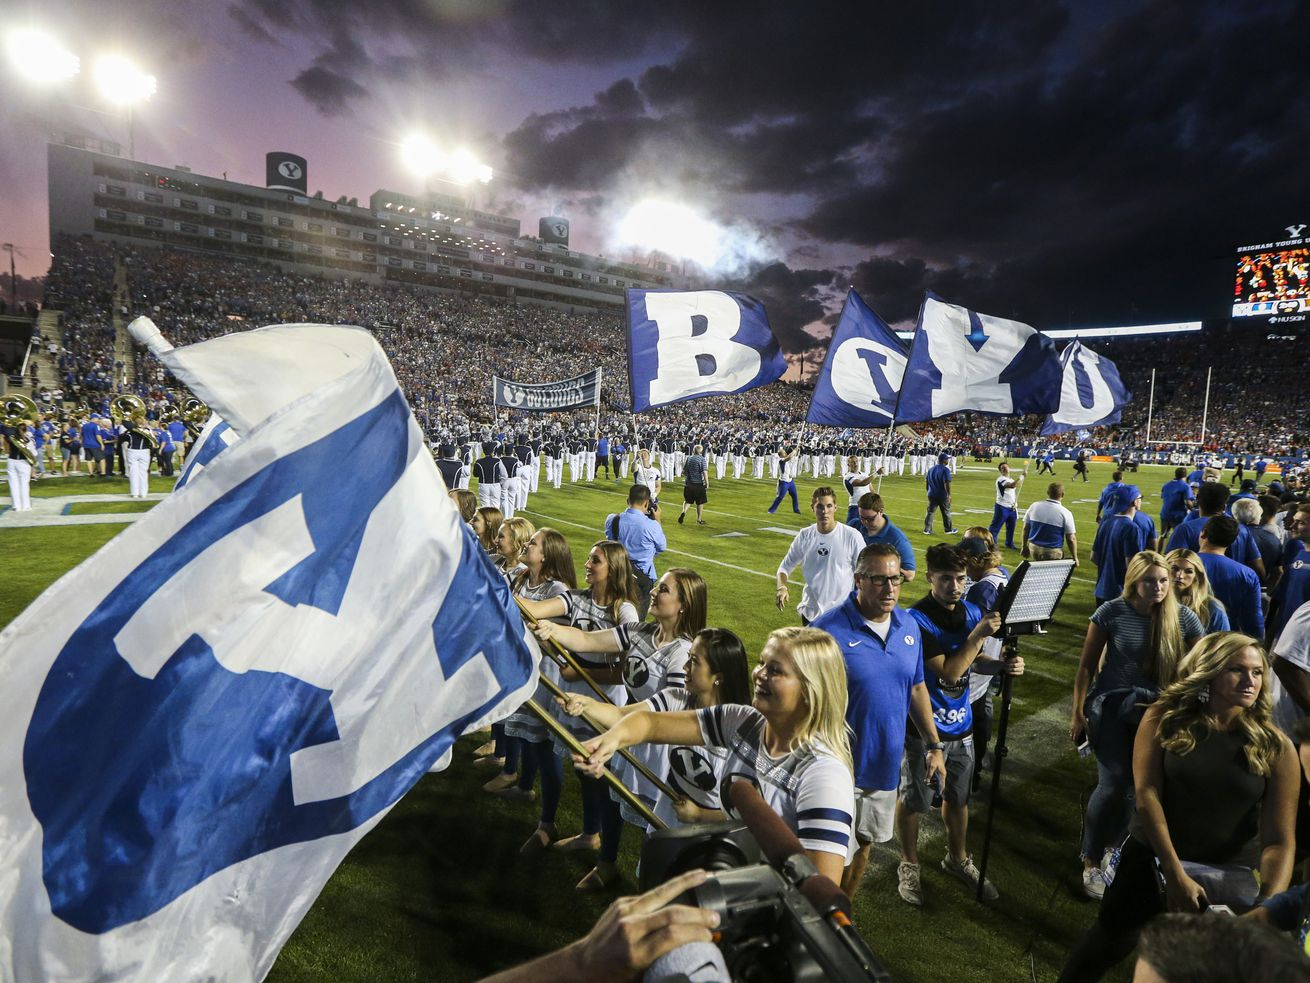 BYU vs. Boise State: How to watch, attend, stream or listen to the game